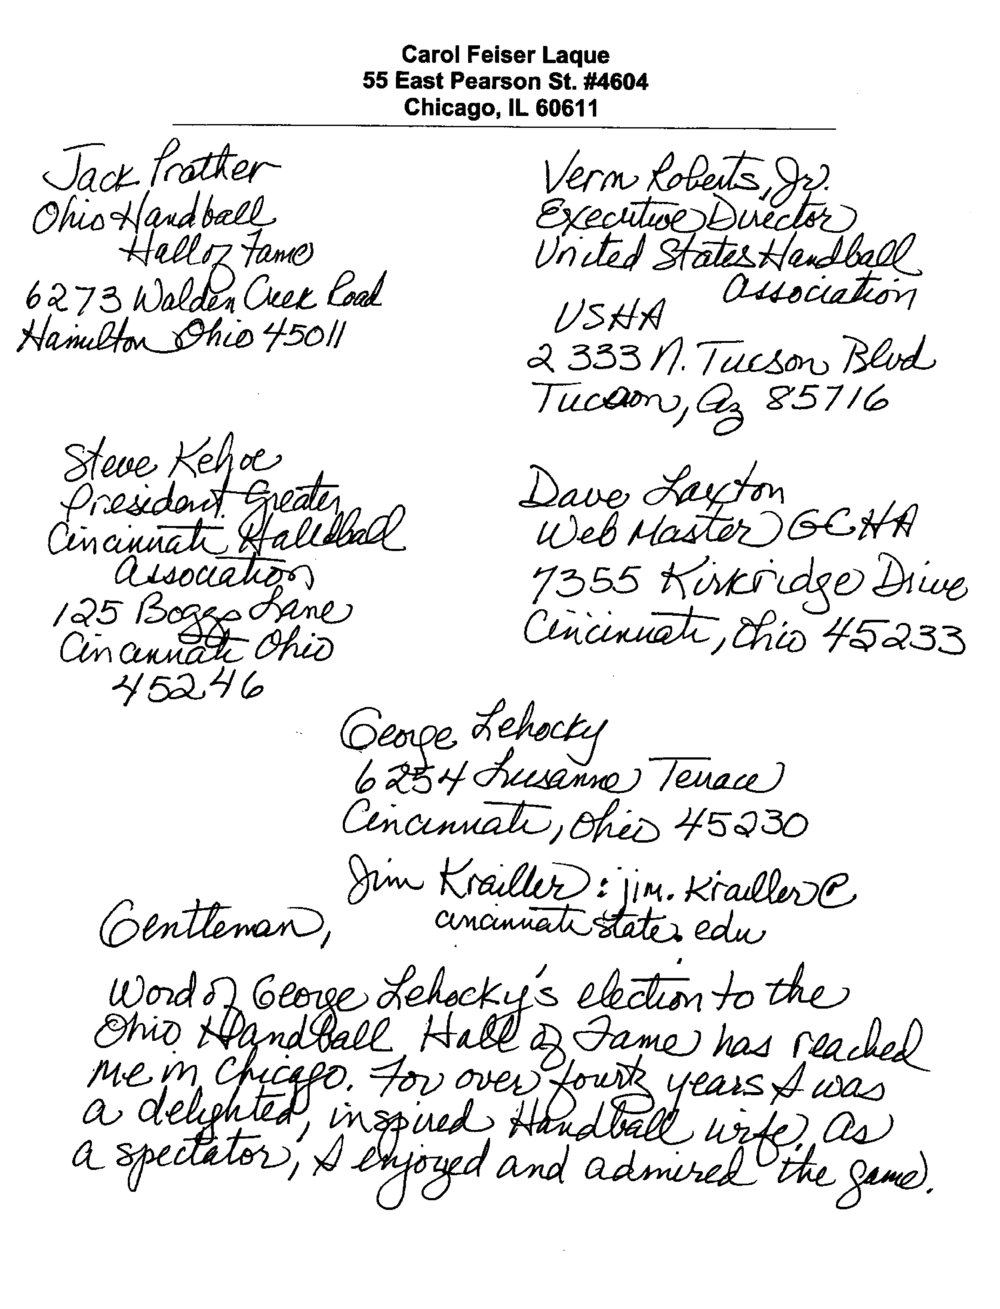 Letter_from_Carol_Feiser_Laque_Page_1_Large.png